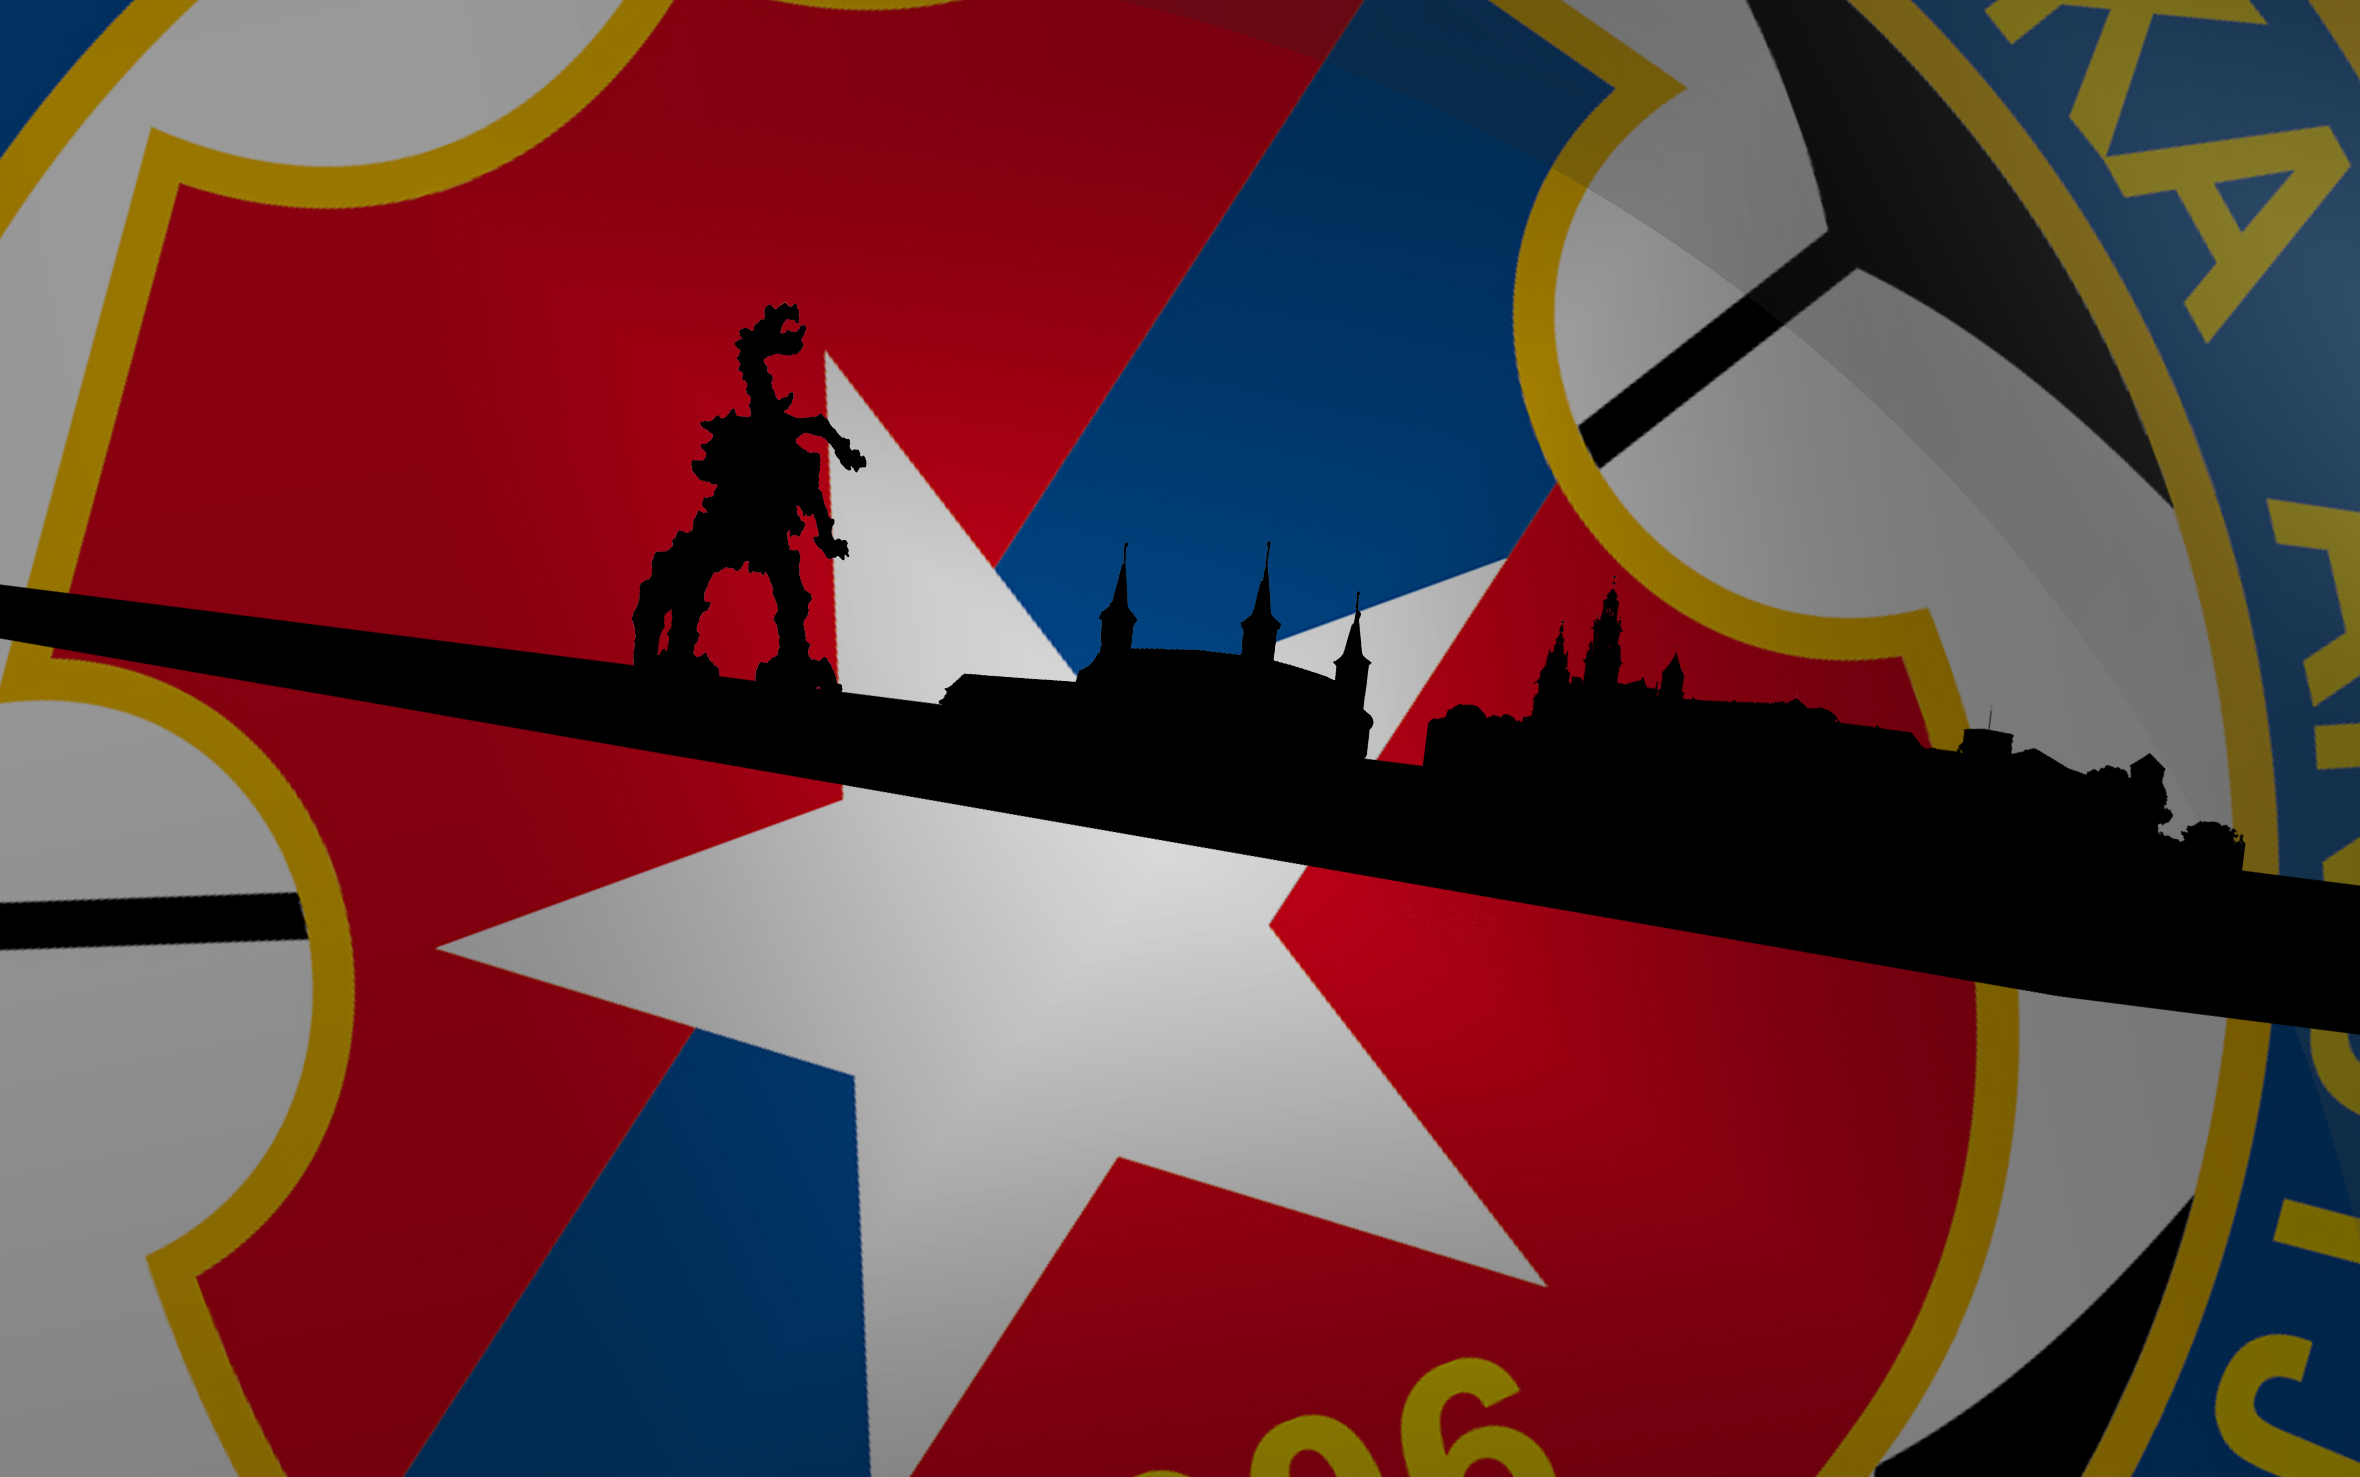 Wisla Krakow Wallpaper by w0jtk0 on DeviantArt.